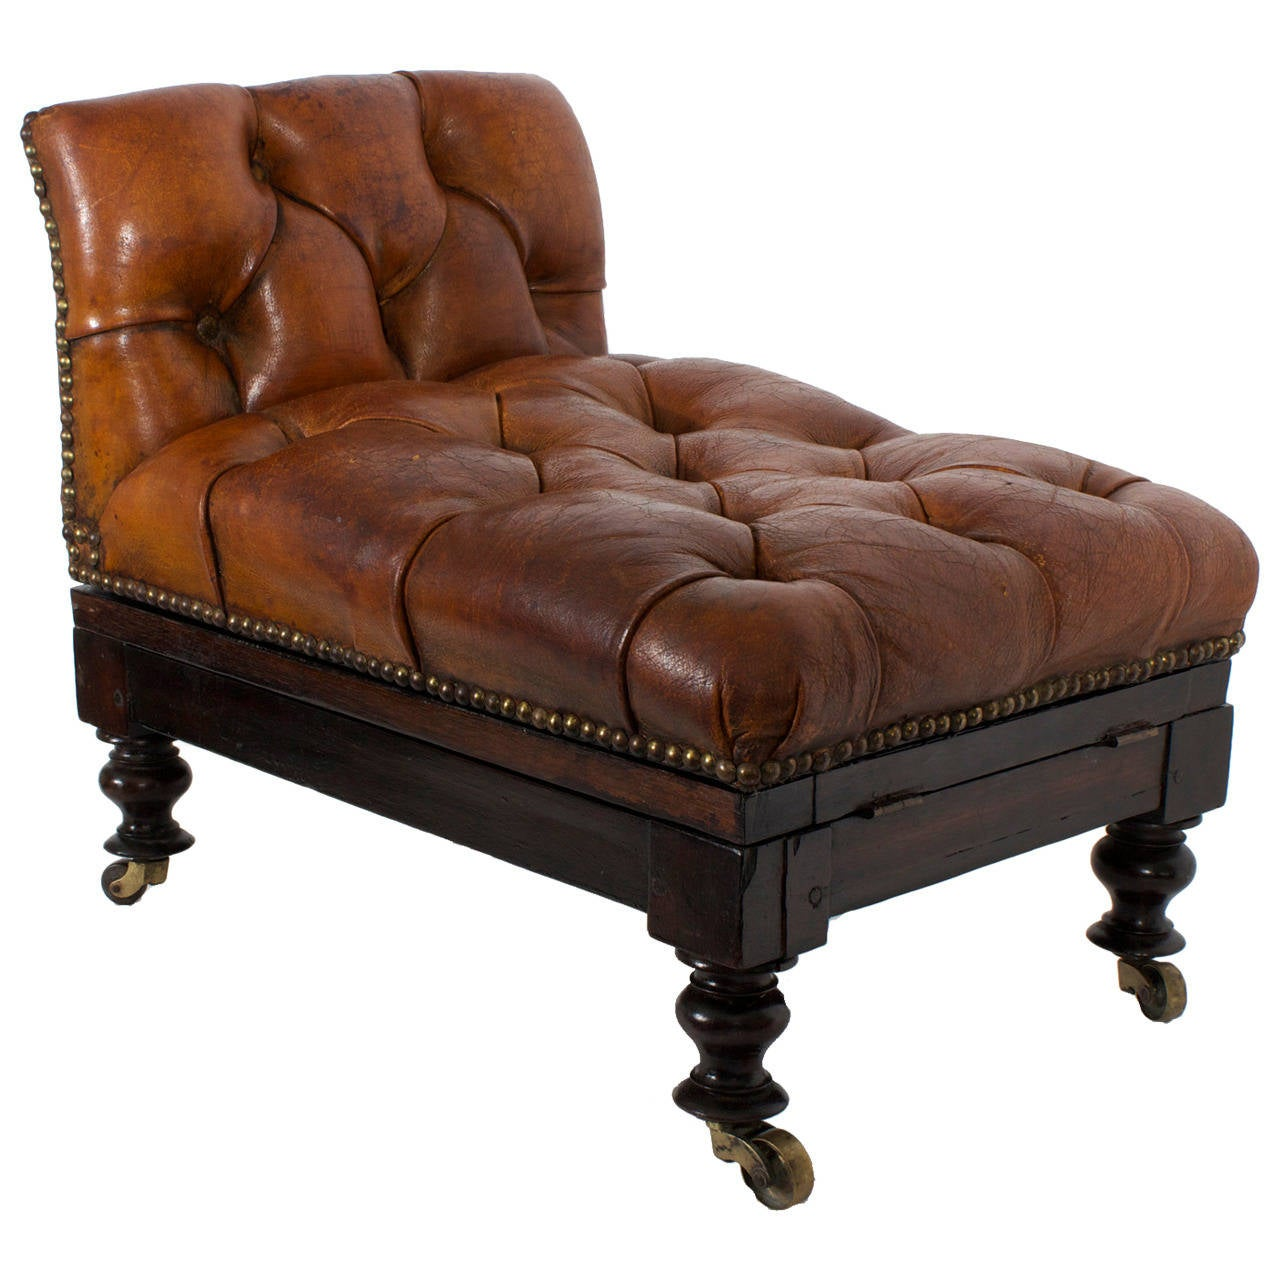 19th Century Tufted Leather Foot Stool or Bench, with Raising Capabilities